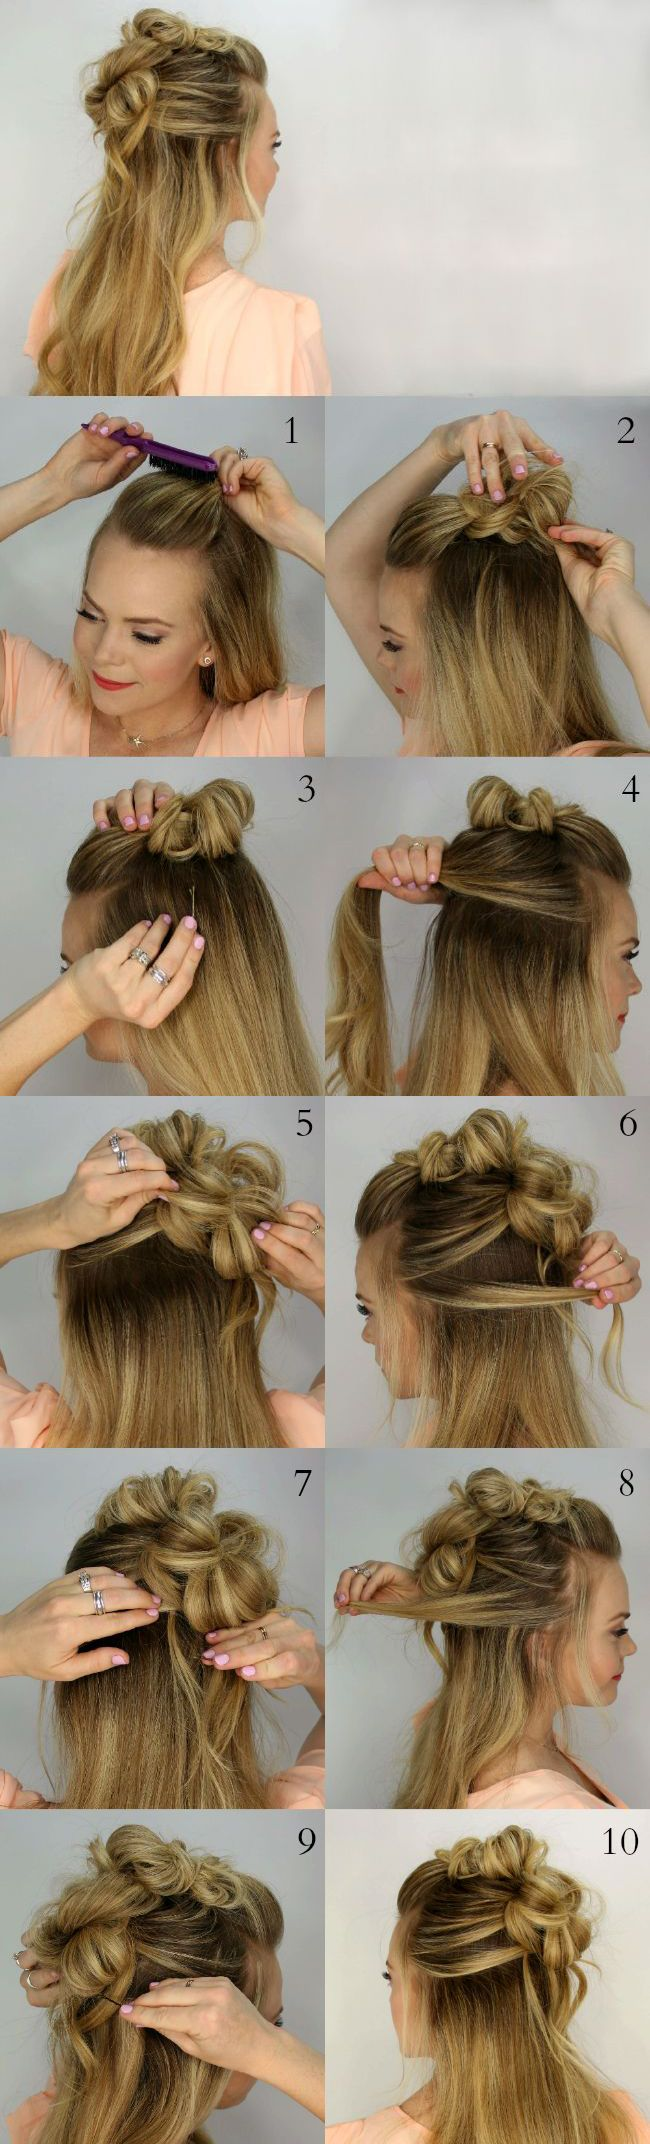 best hairstyles images on pinterest hairstyles braids and hair